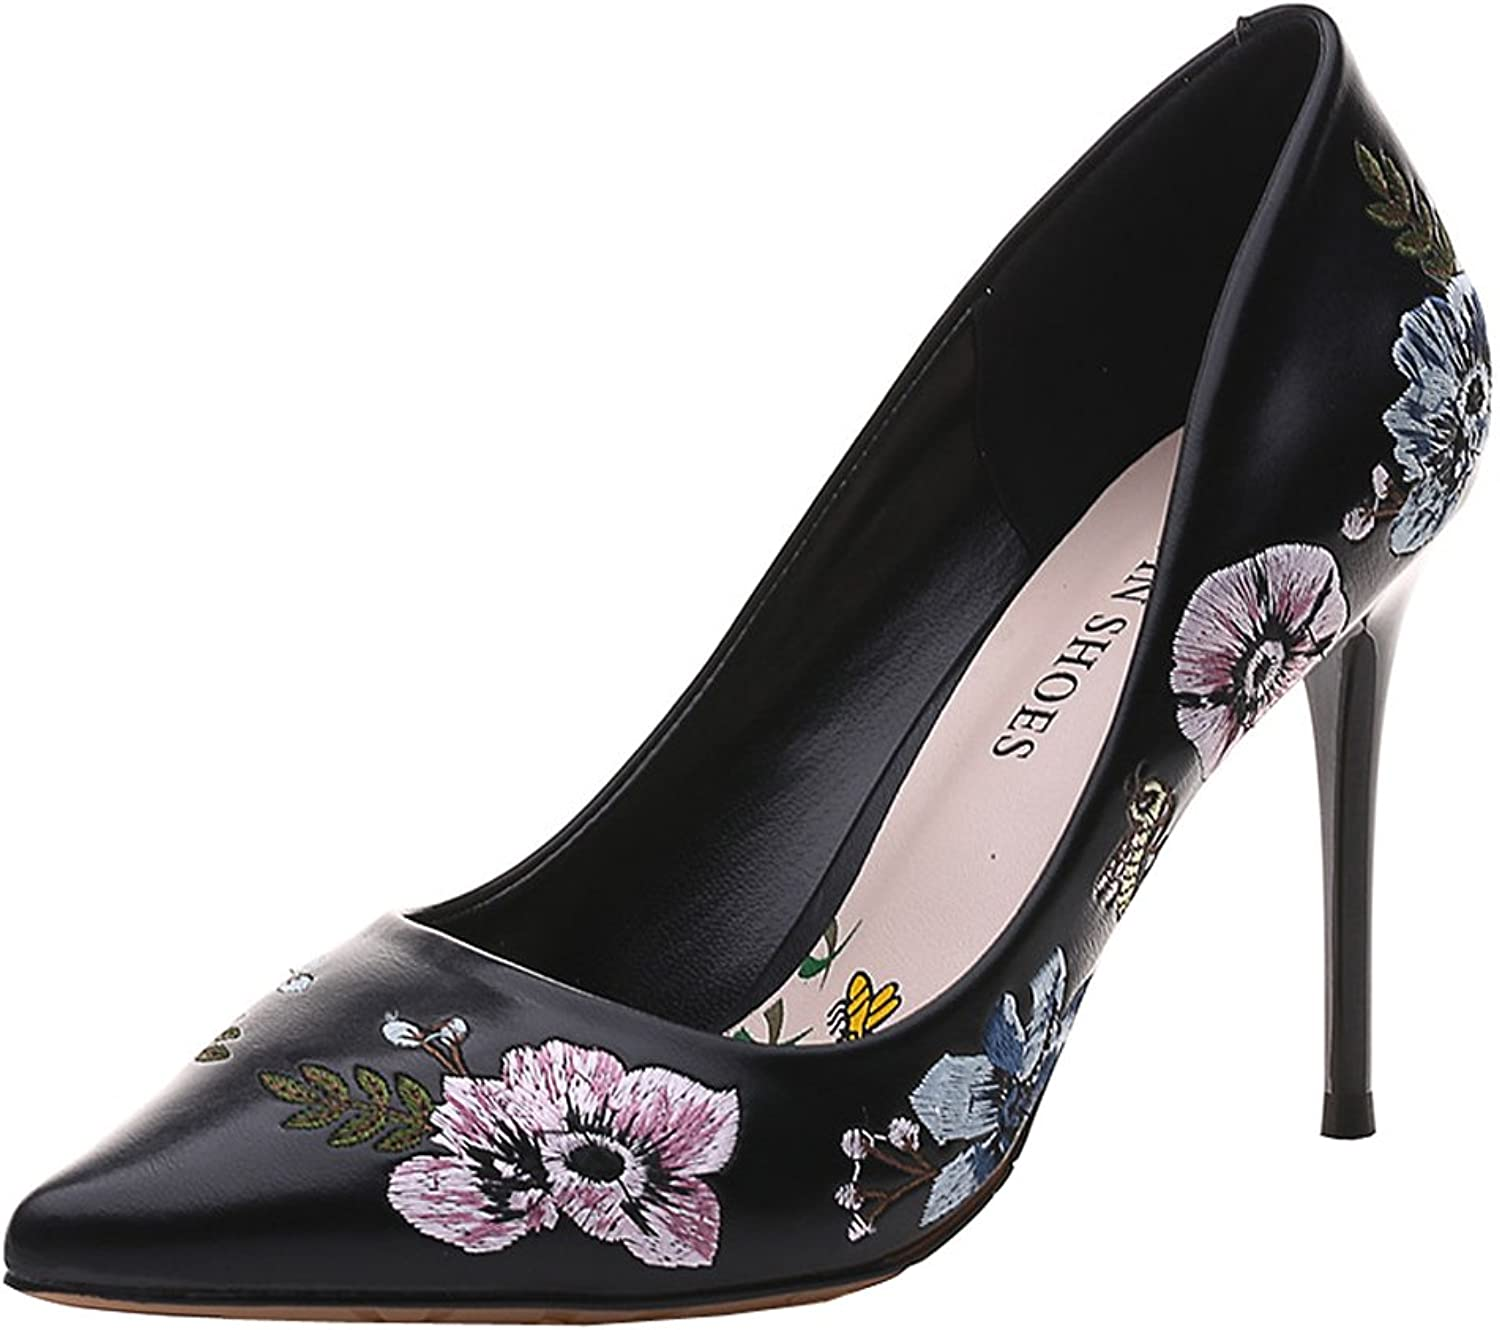 C & C Women's PU Embroidered Heel shoes Pump shoes